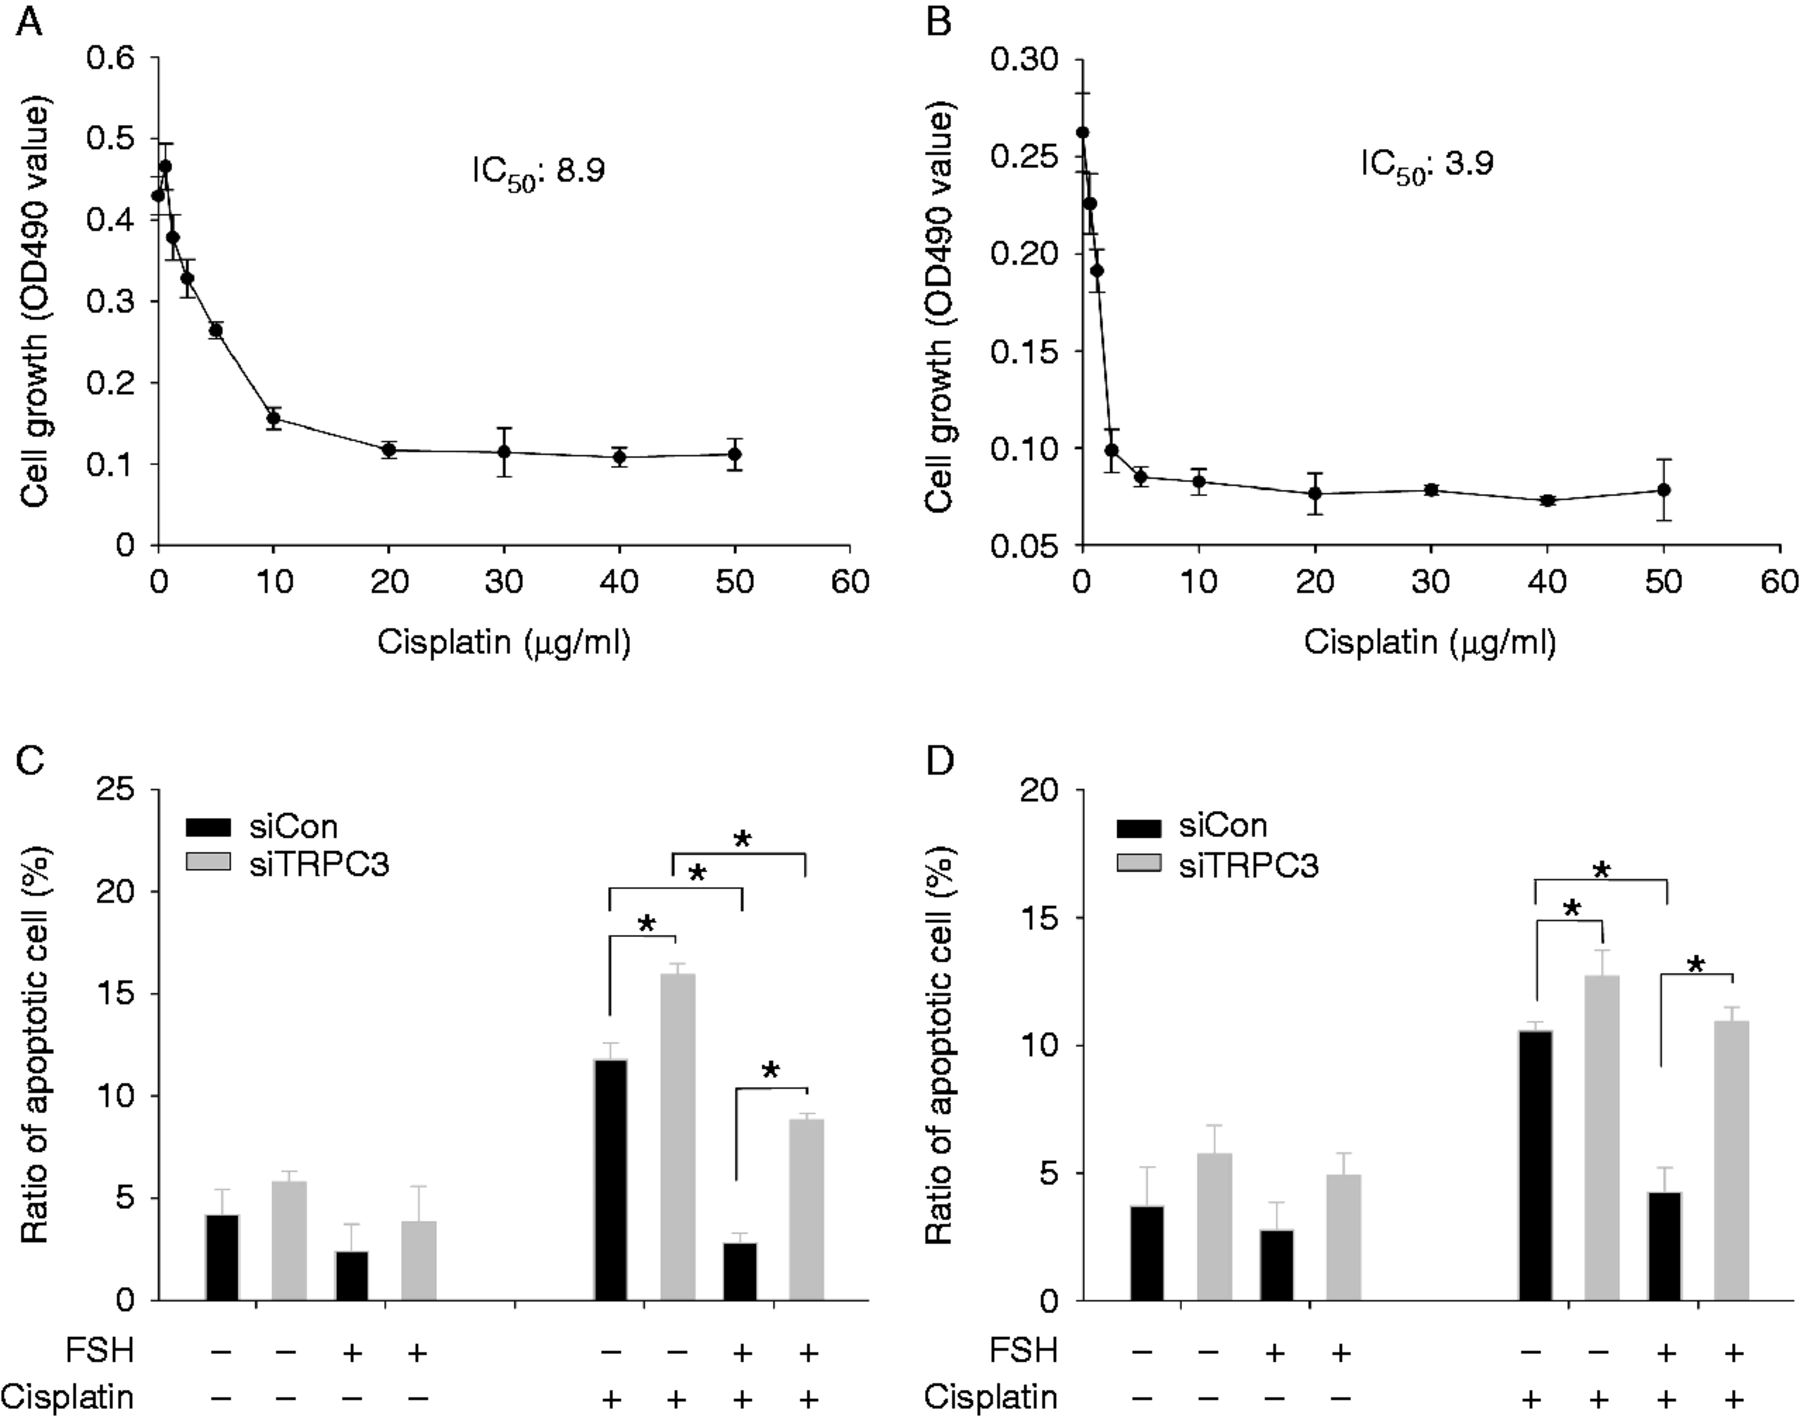 Fsh Enhances The Proliferation Of Ovarian Cancer Cells By Activating Transient Receptor Potential Channel C3 In Endocrine Related Cancer Volume 20 Issue 3 2013